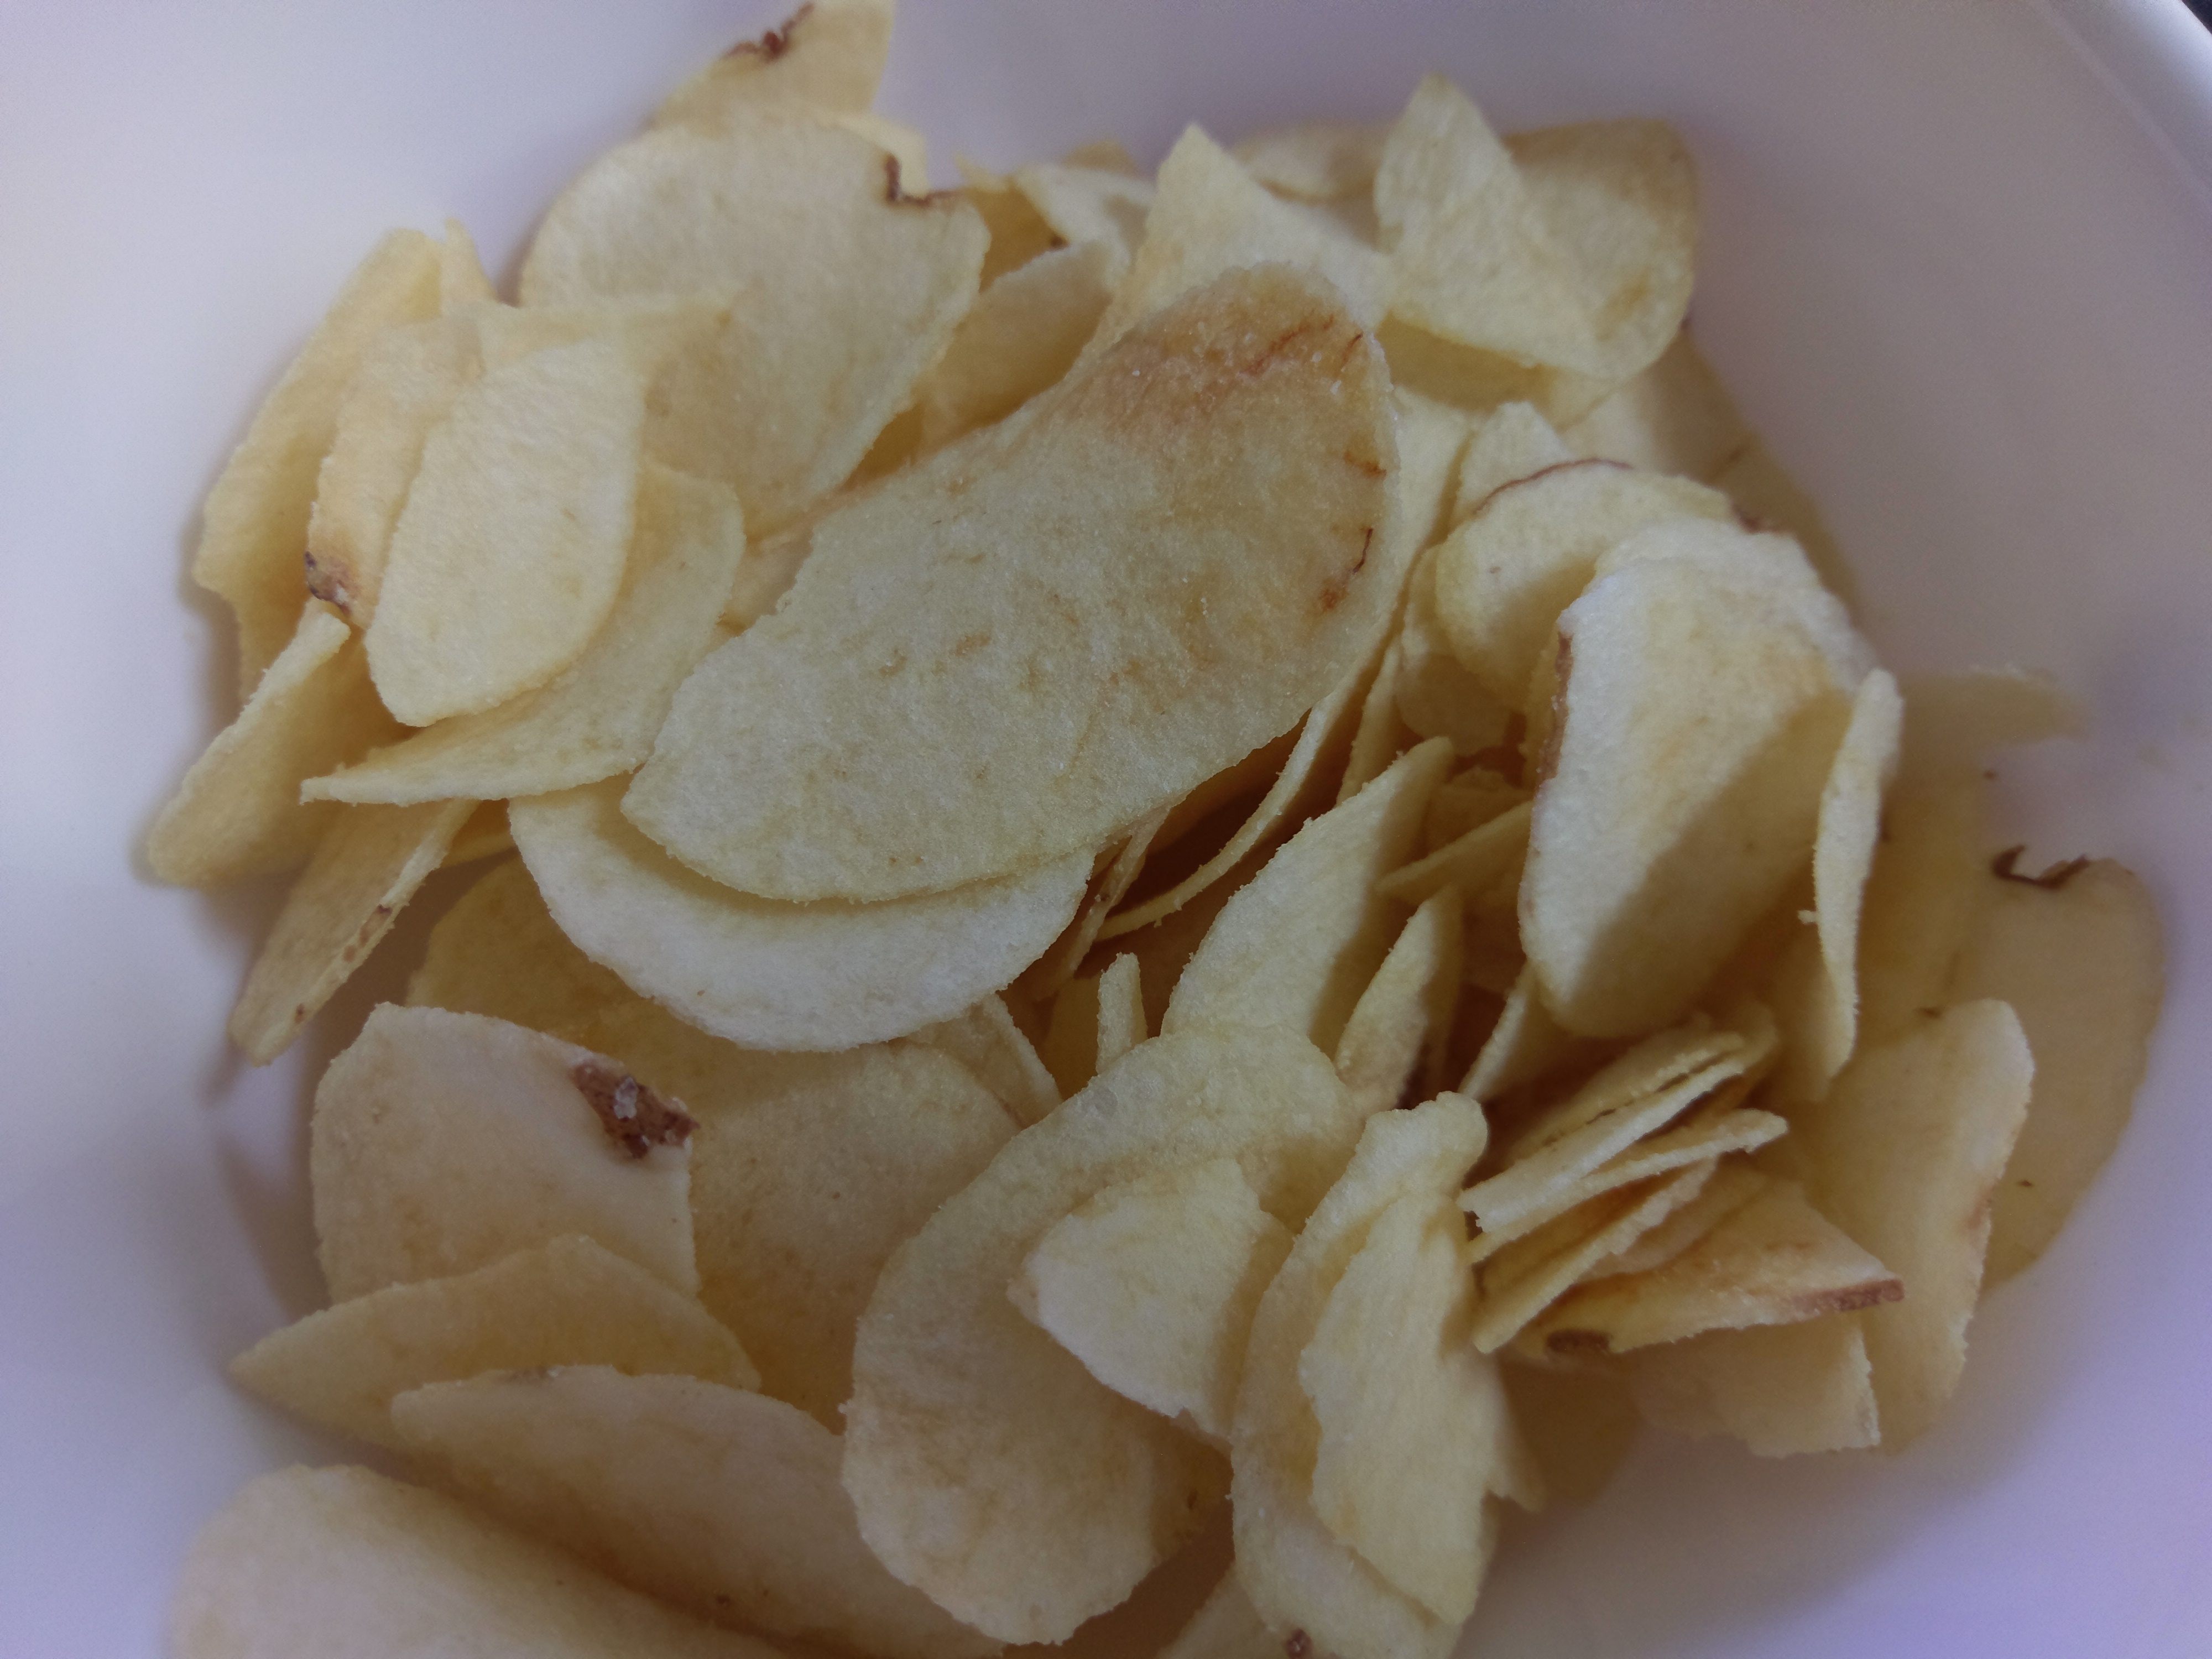 A close up of the Cosmos yogurt potato chips